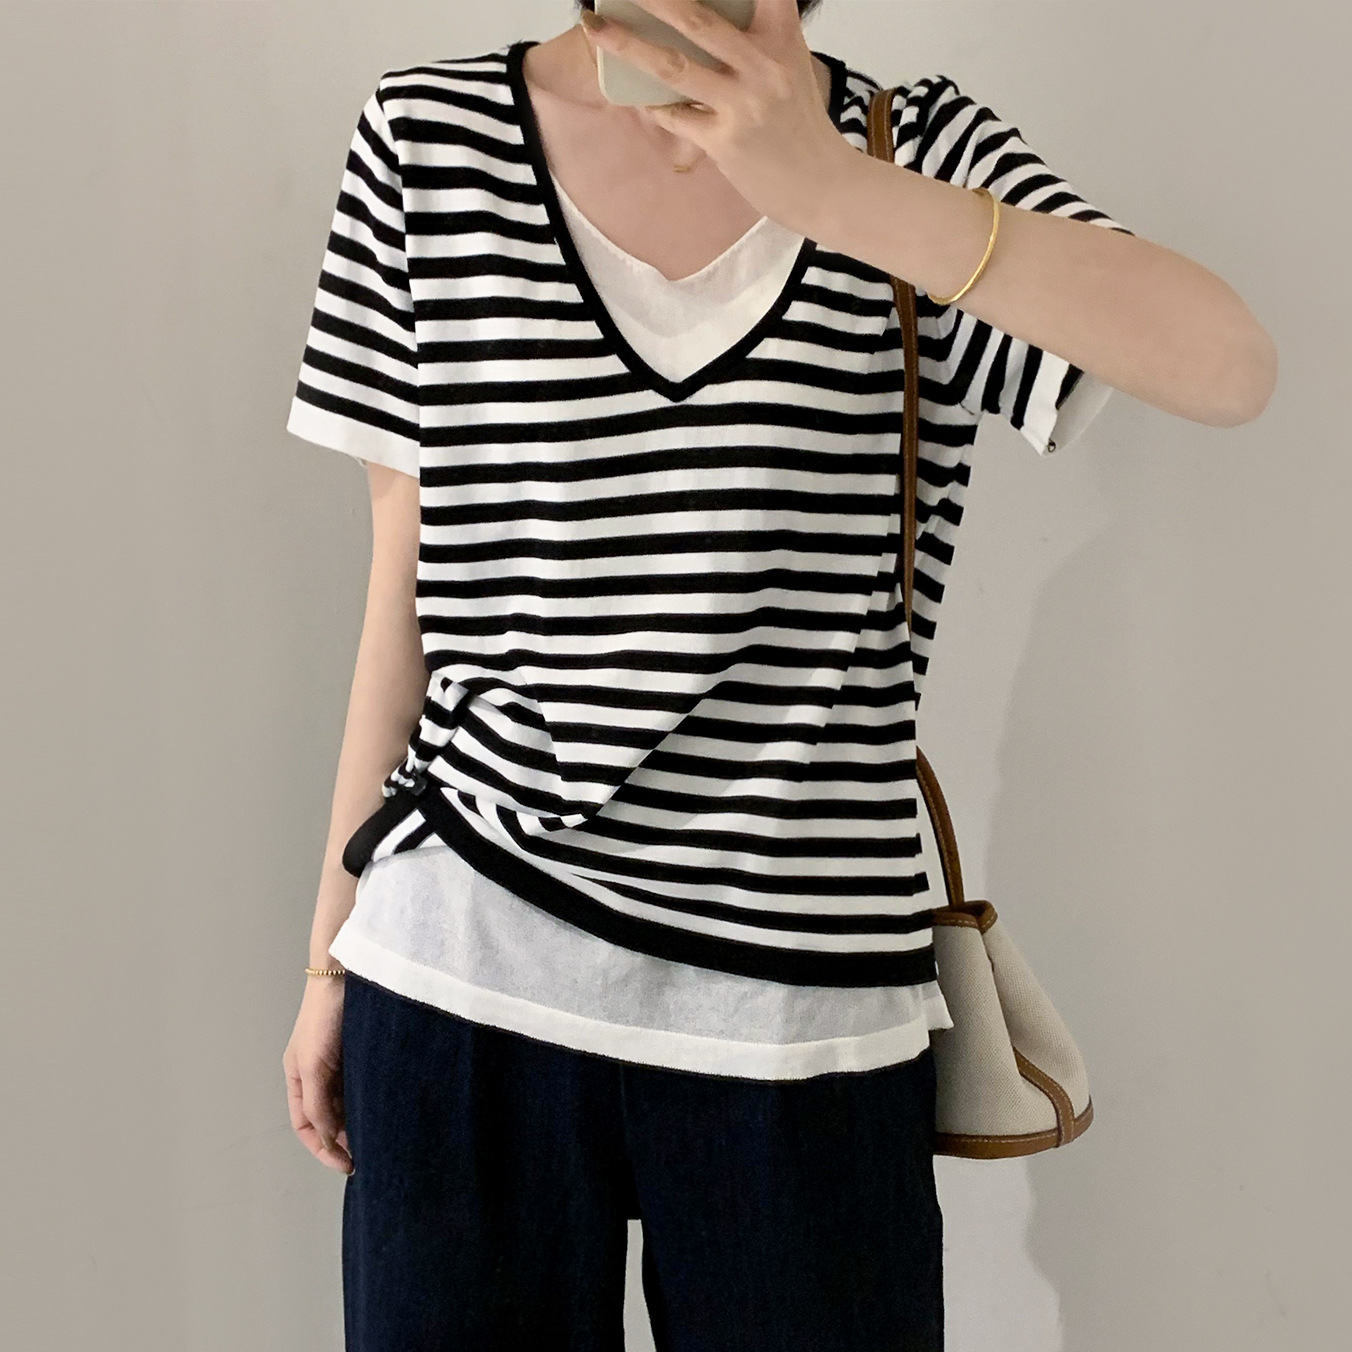 Yanshuang 2021 summer new style V-neck striped fake two-piece small shirt thin knit sweater female i